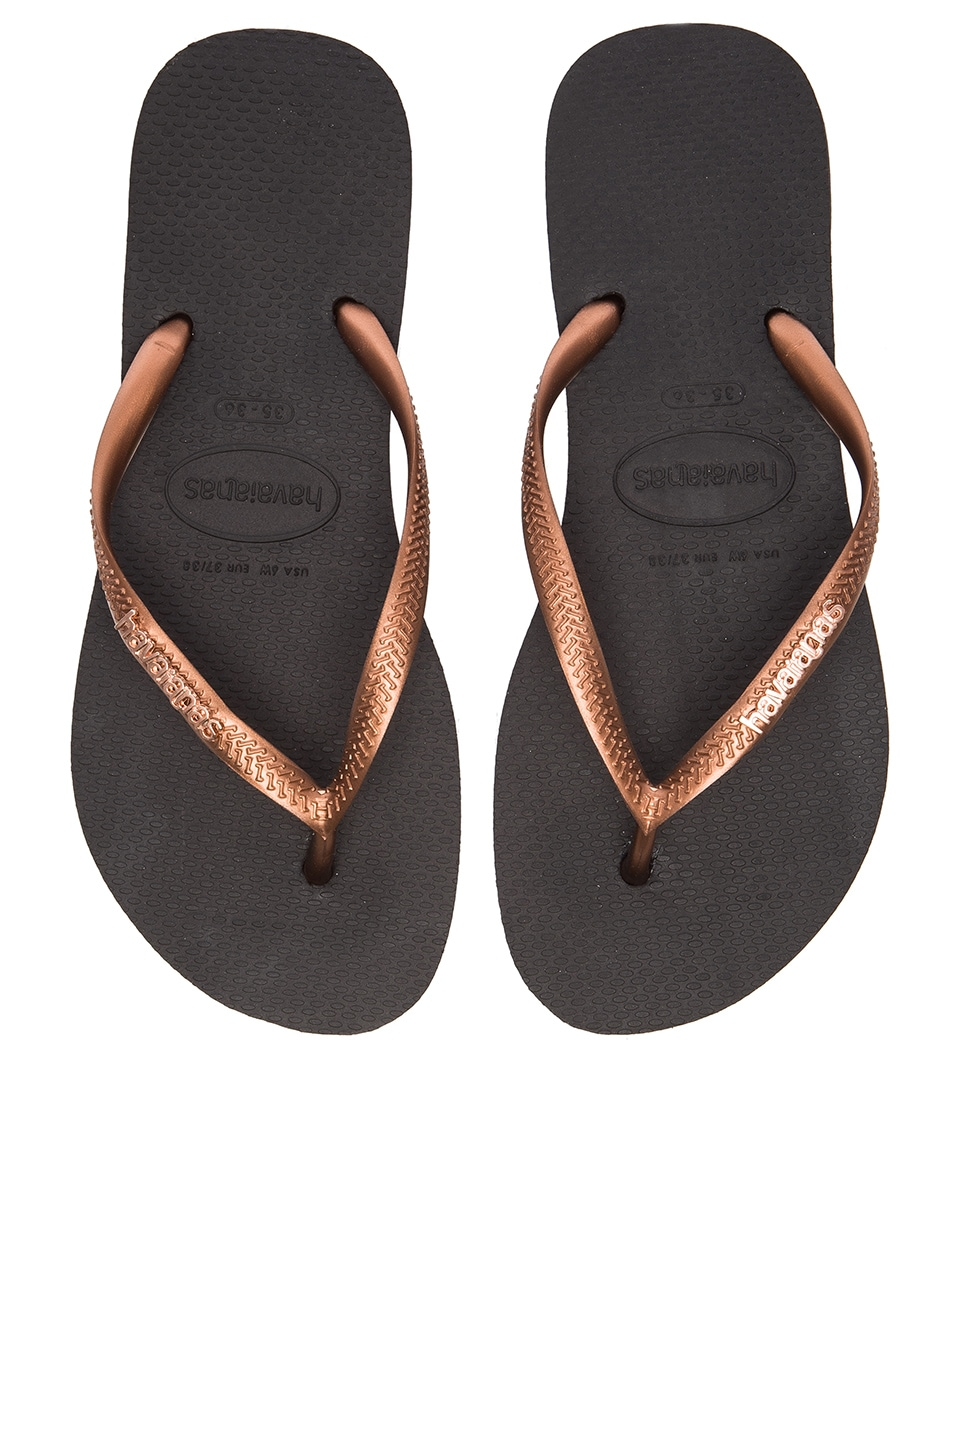 57c8a577d6a32b Havaianas Slim Logo Metallic Flip Flop in Black   Copper